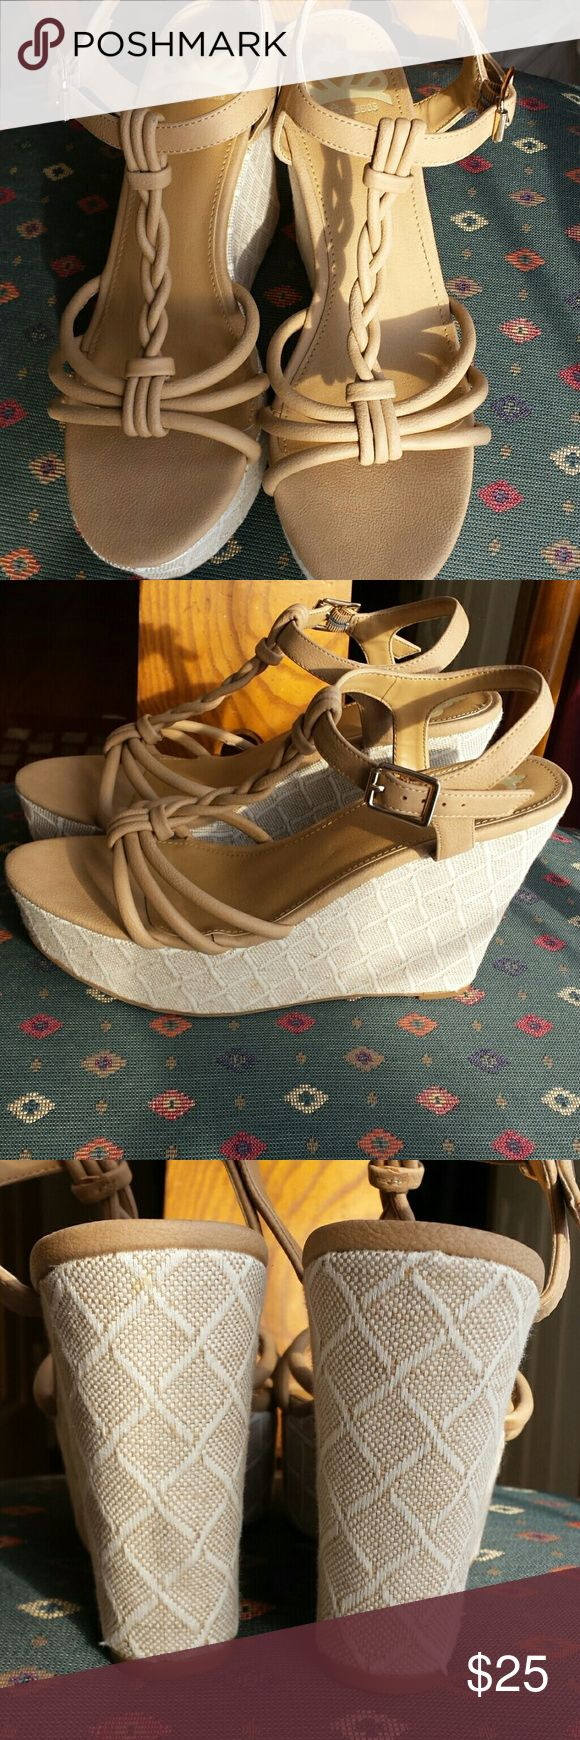 Very Pretty Fergalicious by Fergie Sandals These sandals are in like new condition. very nice 4 inch wedge heels.  2 inch platform. Tan in color. Fergalicious by Fergie Shoes Sandals